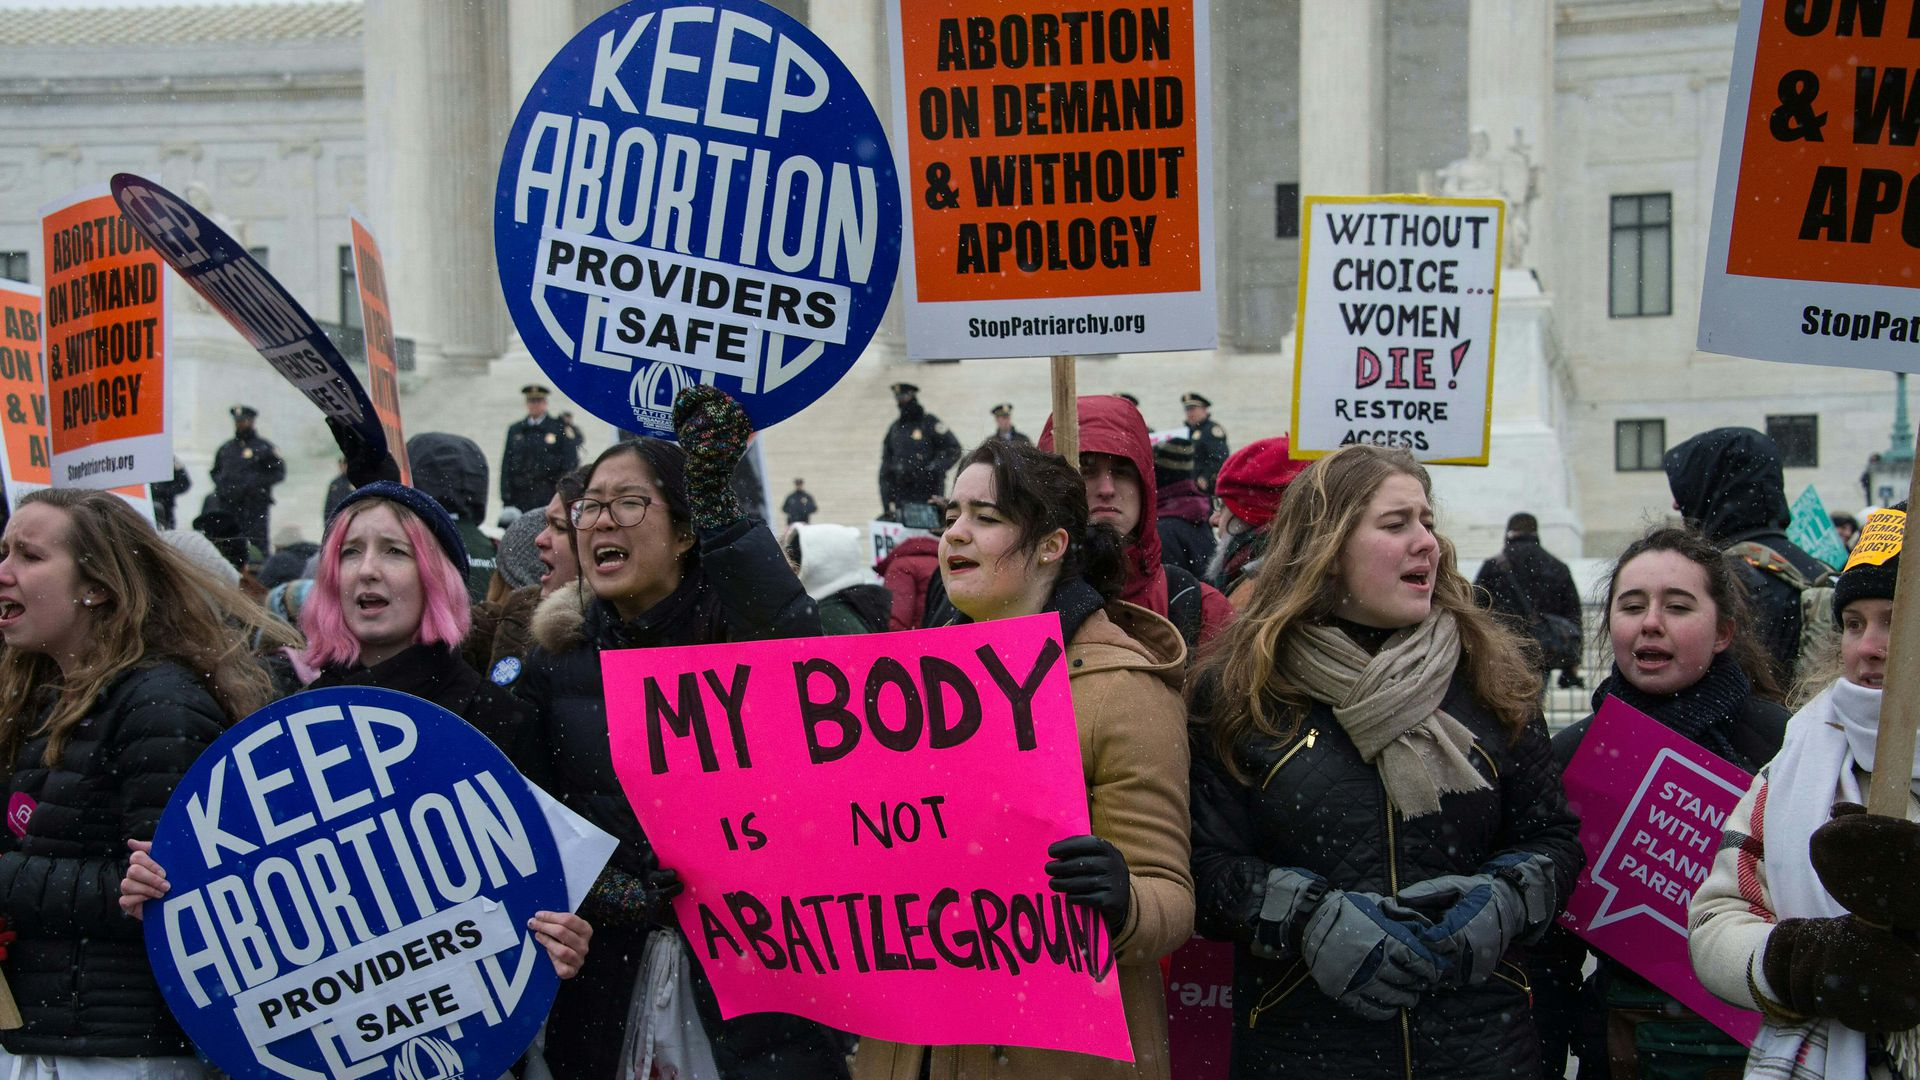 Pro-abortion protesters in Washington, D.C.